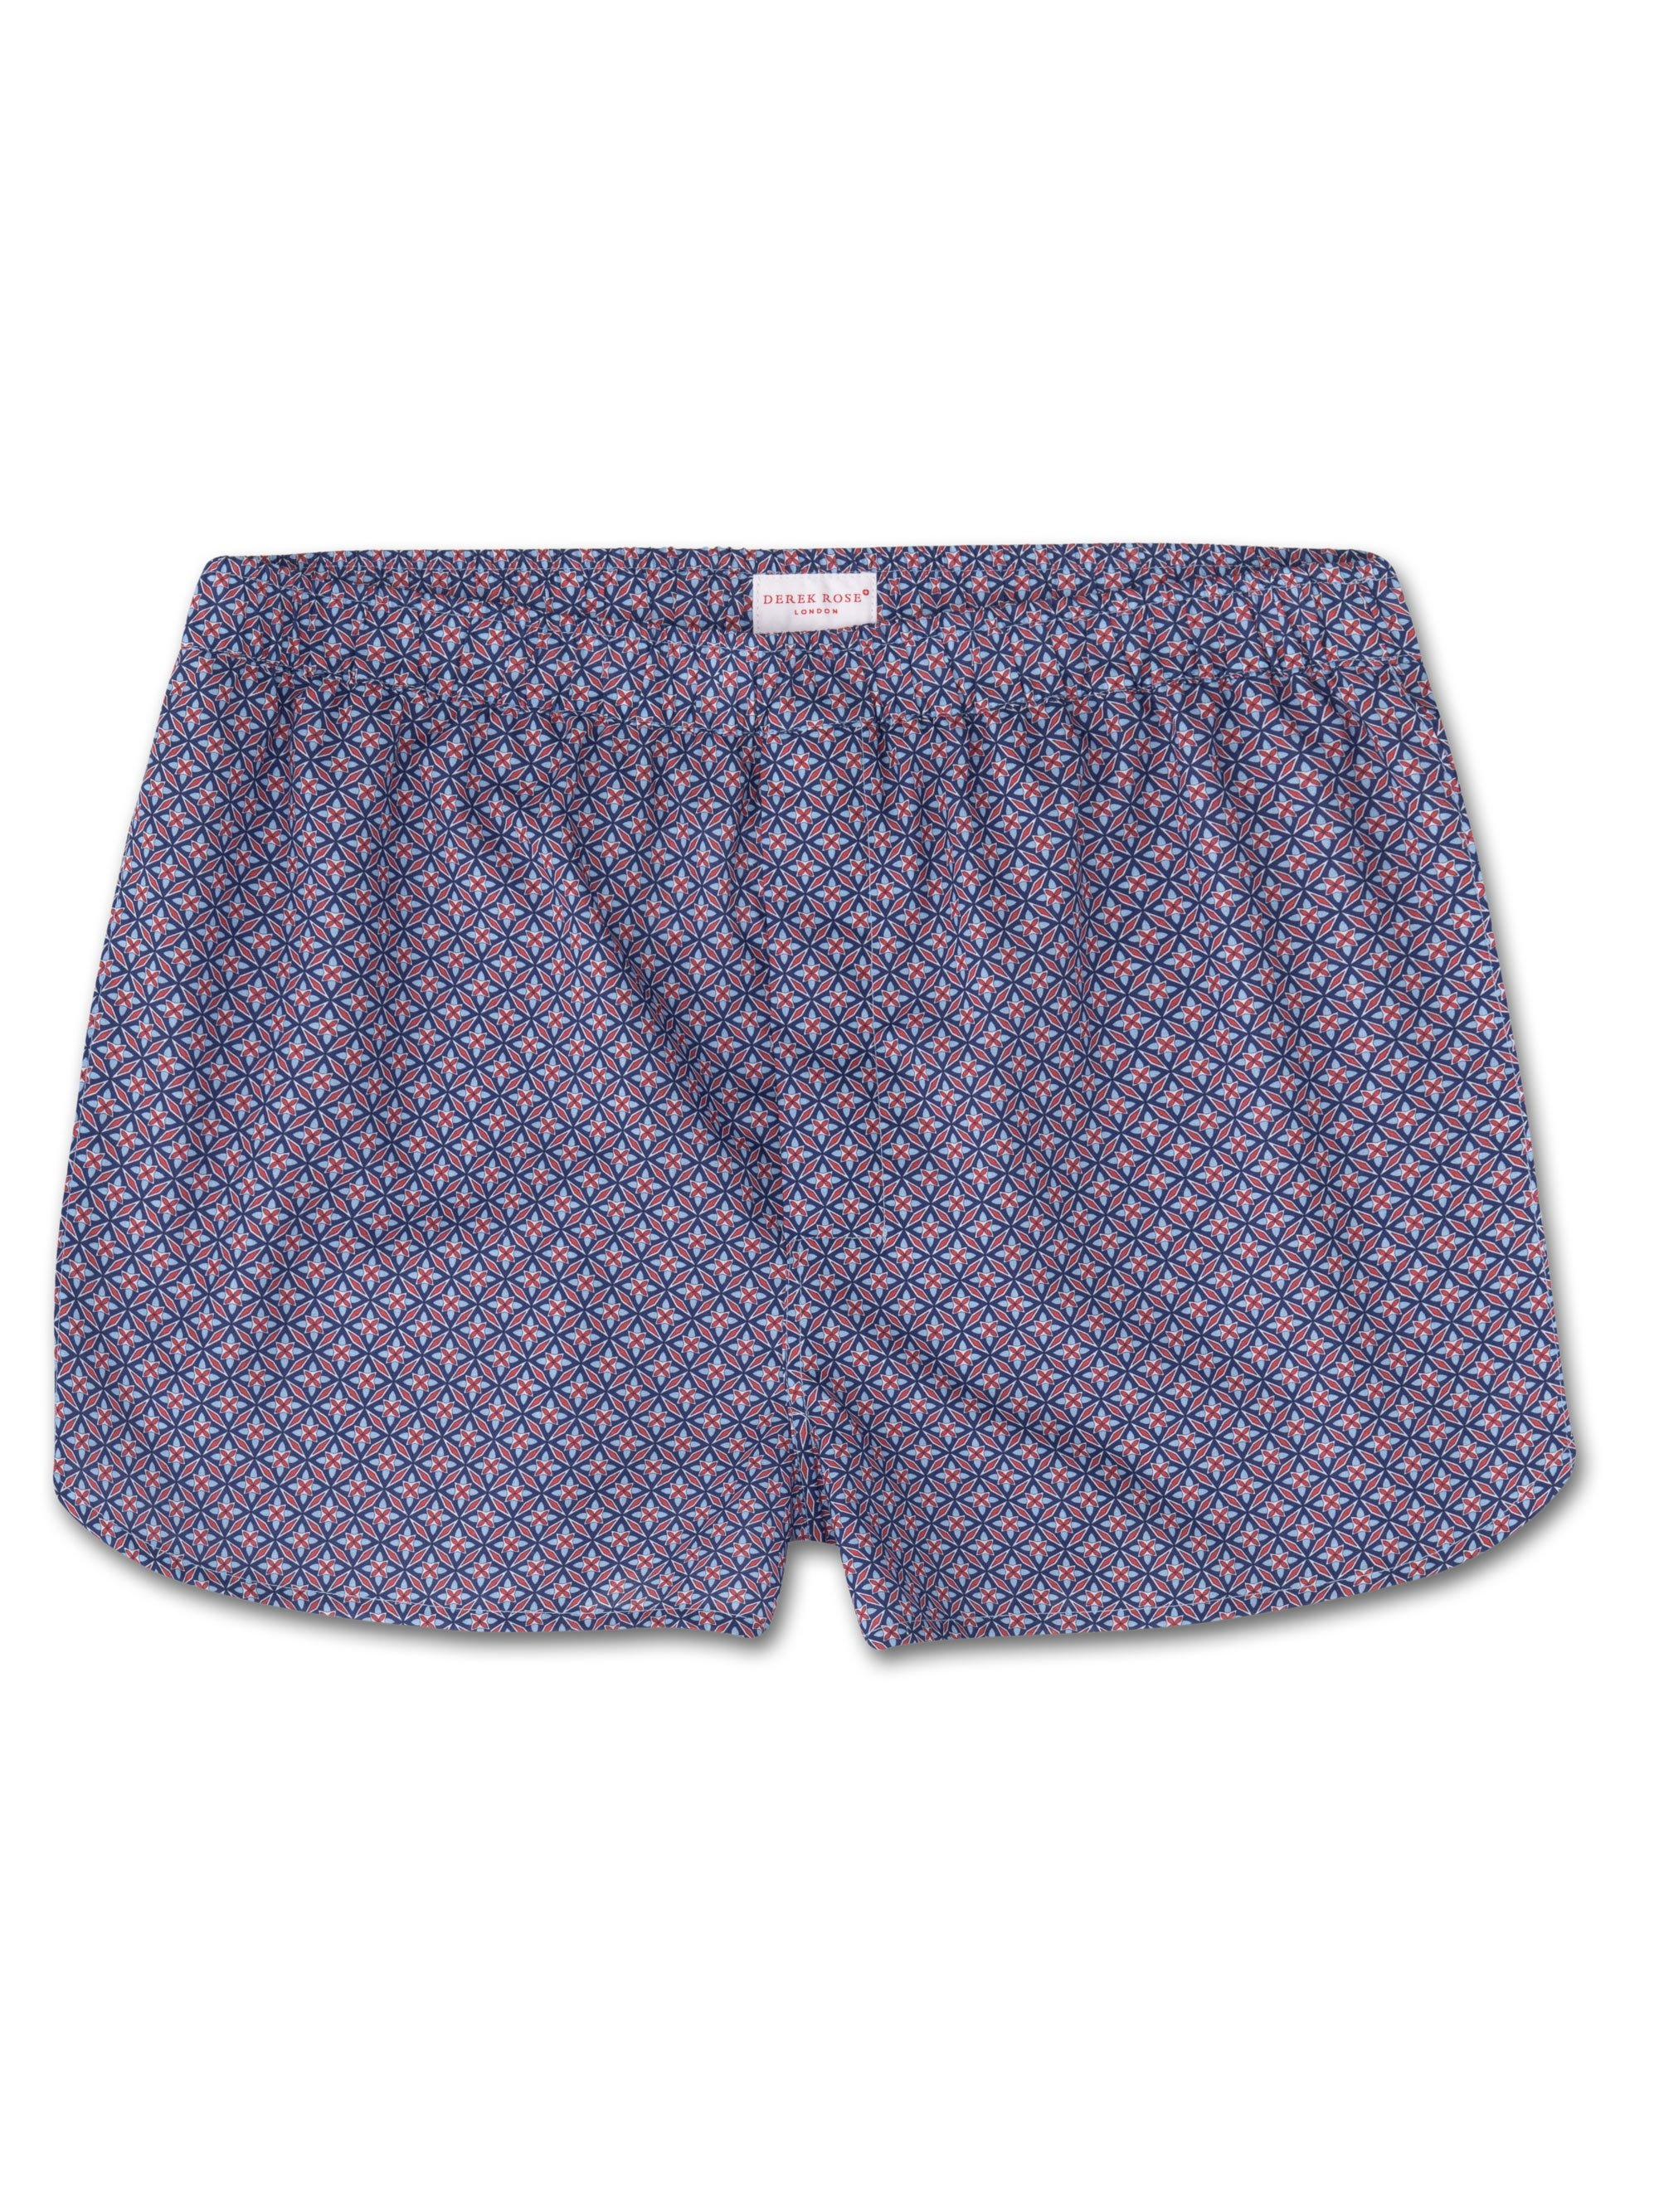 Men's Modern Fit Boxer Shorts Ledbury 21 Cotton Batiste Red